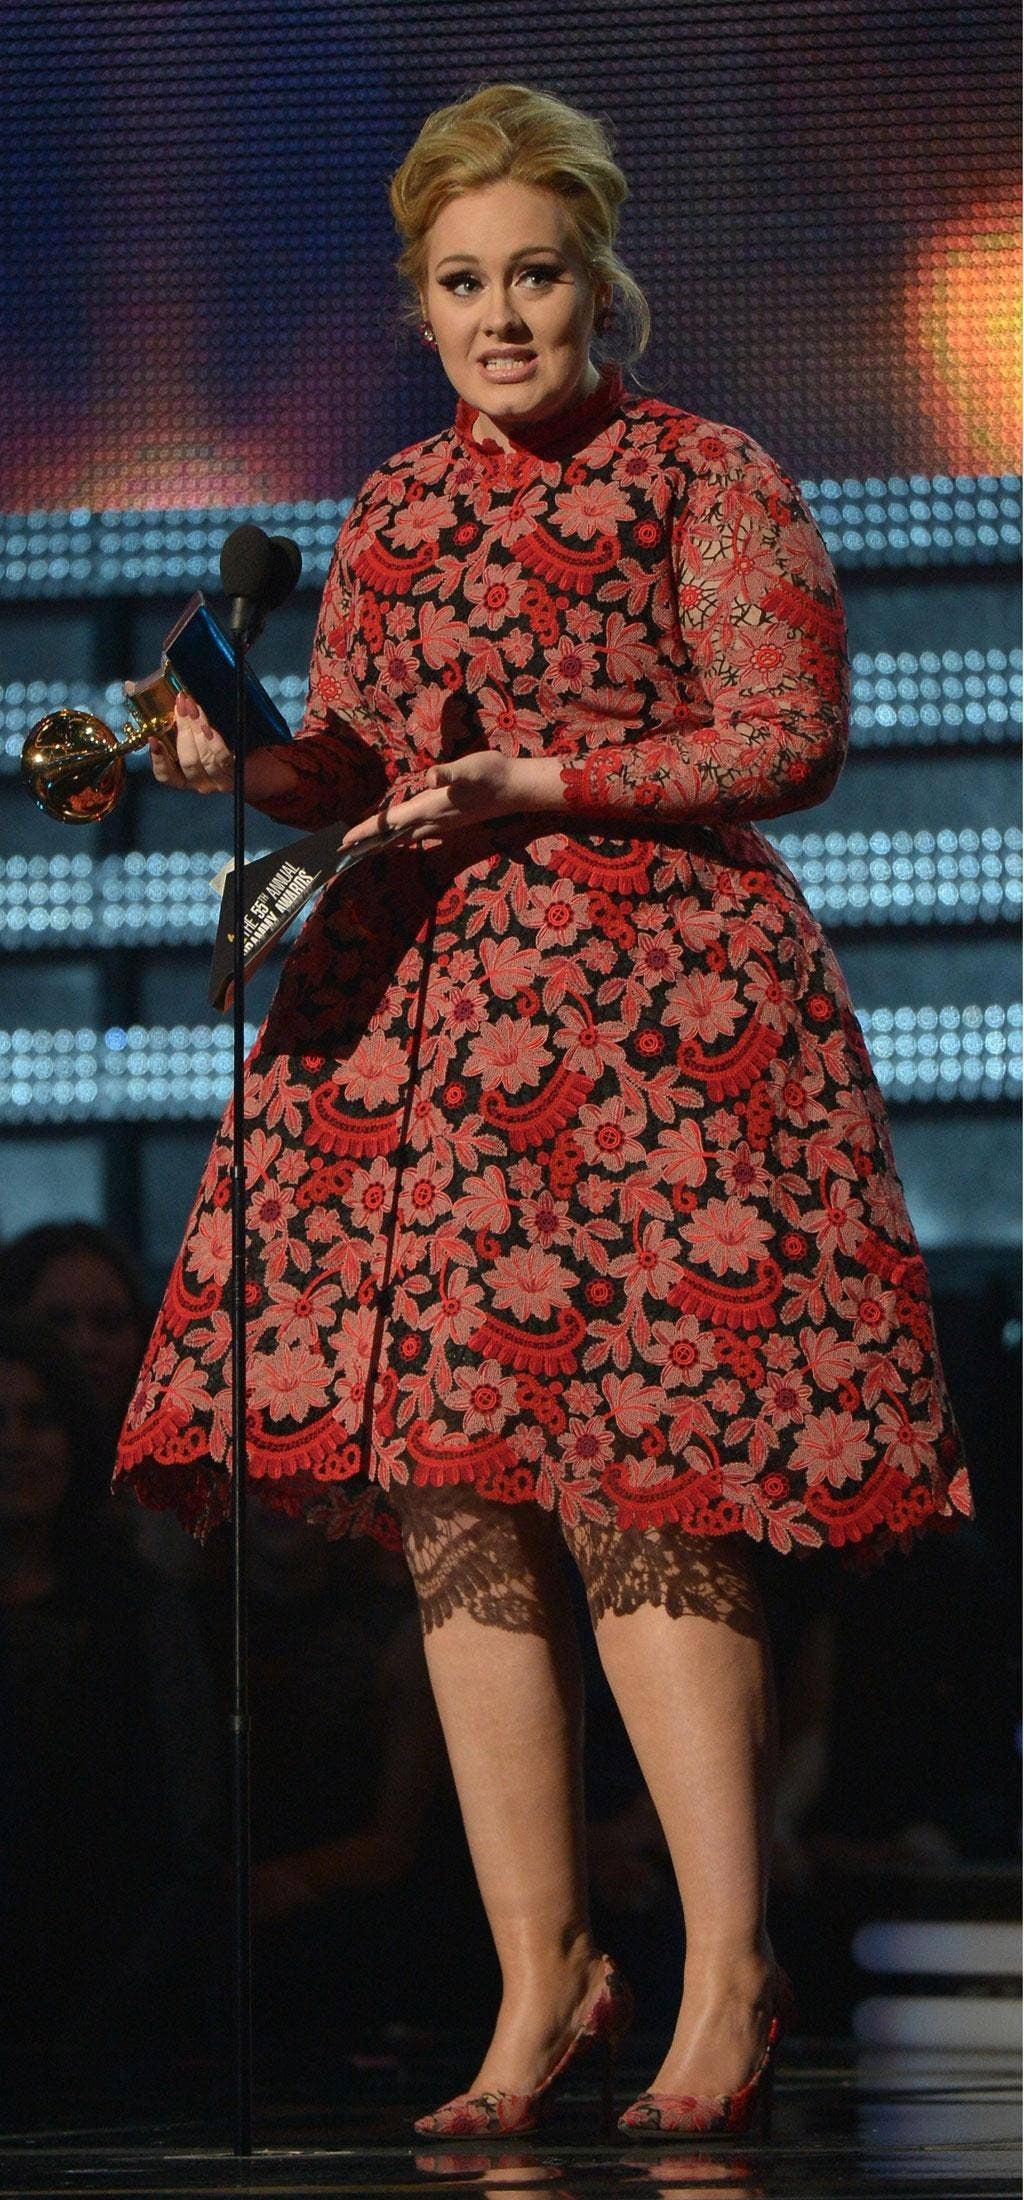 Adele receives the Grammy for best pop solo performance